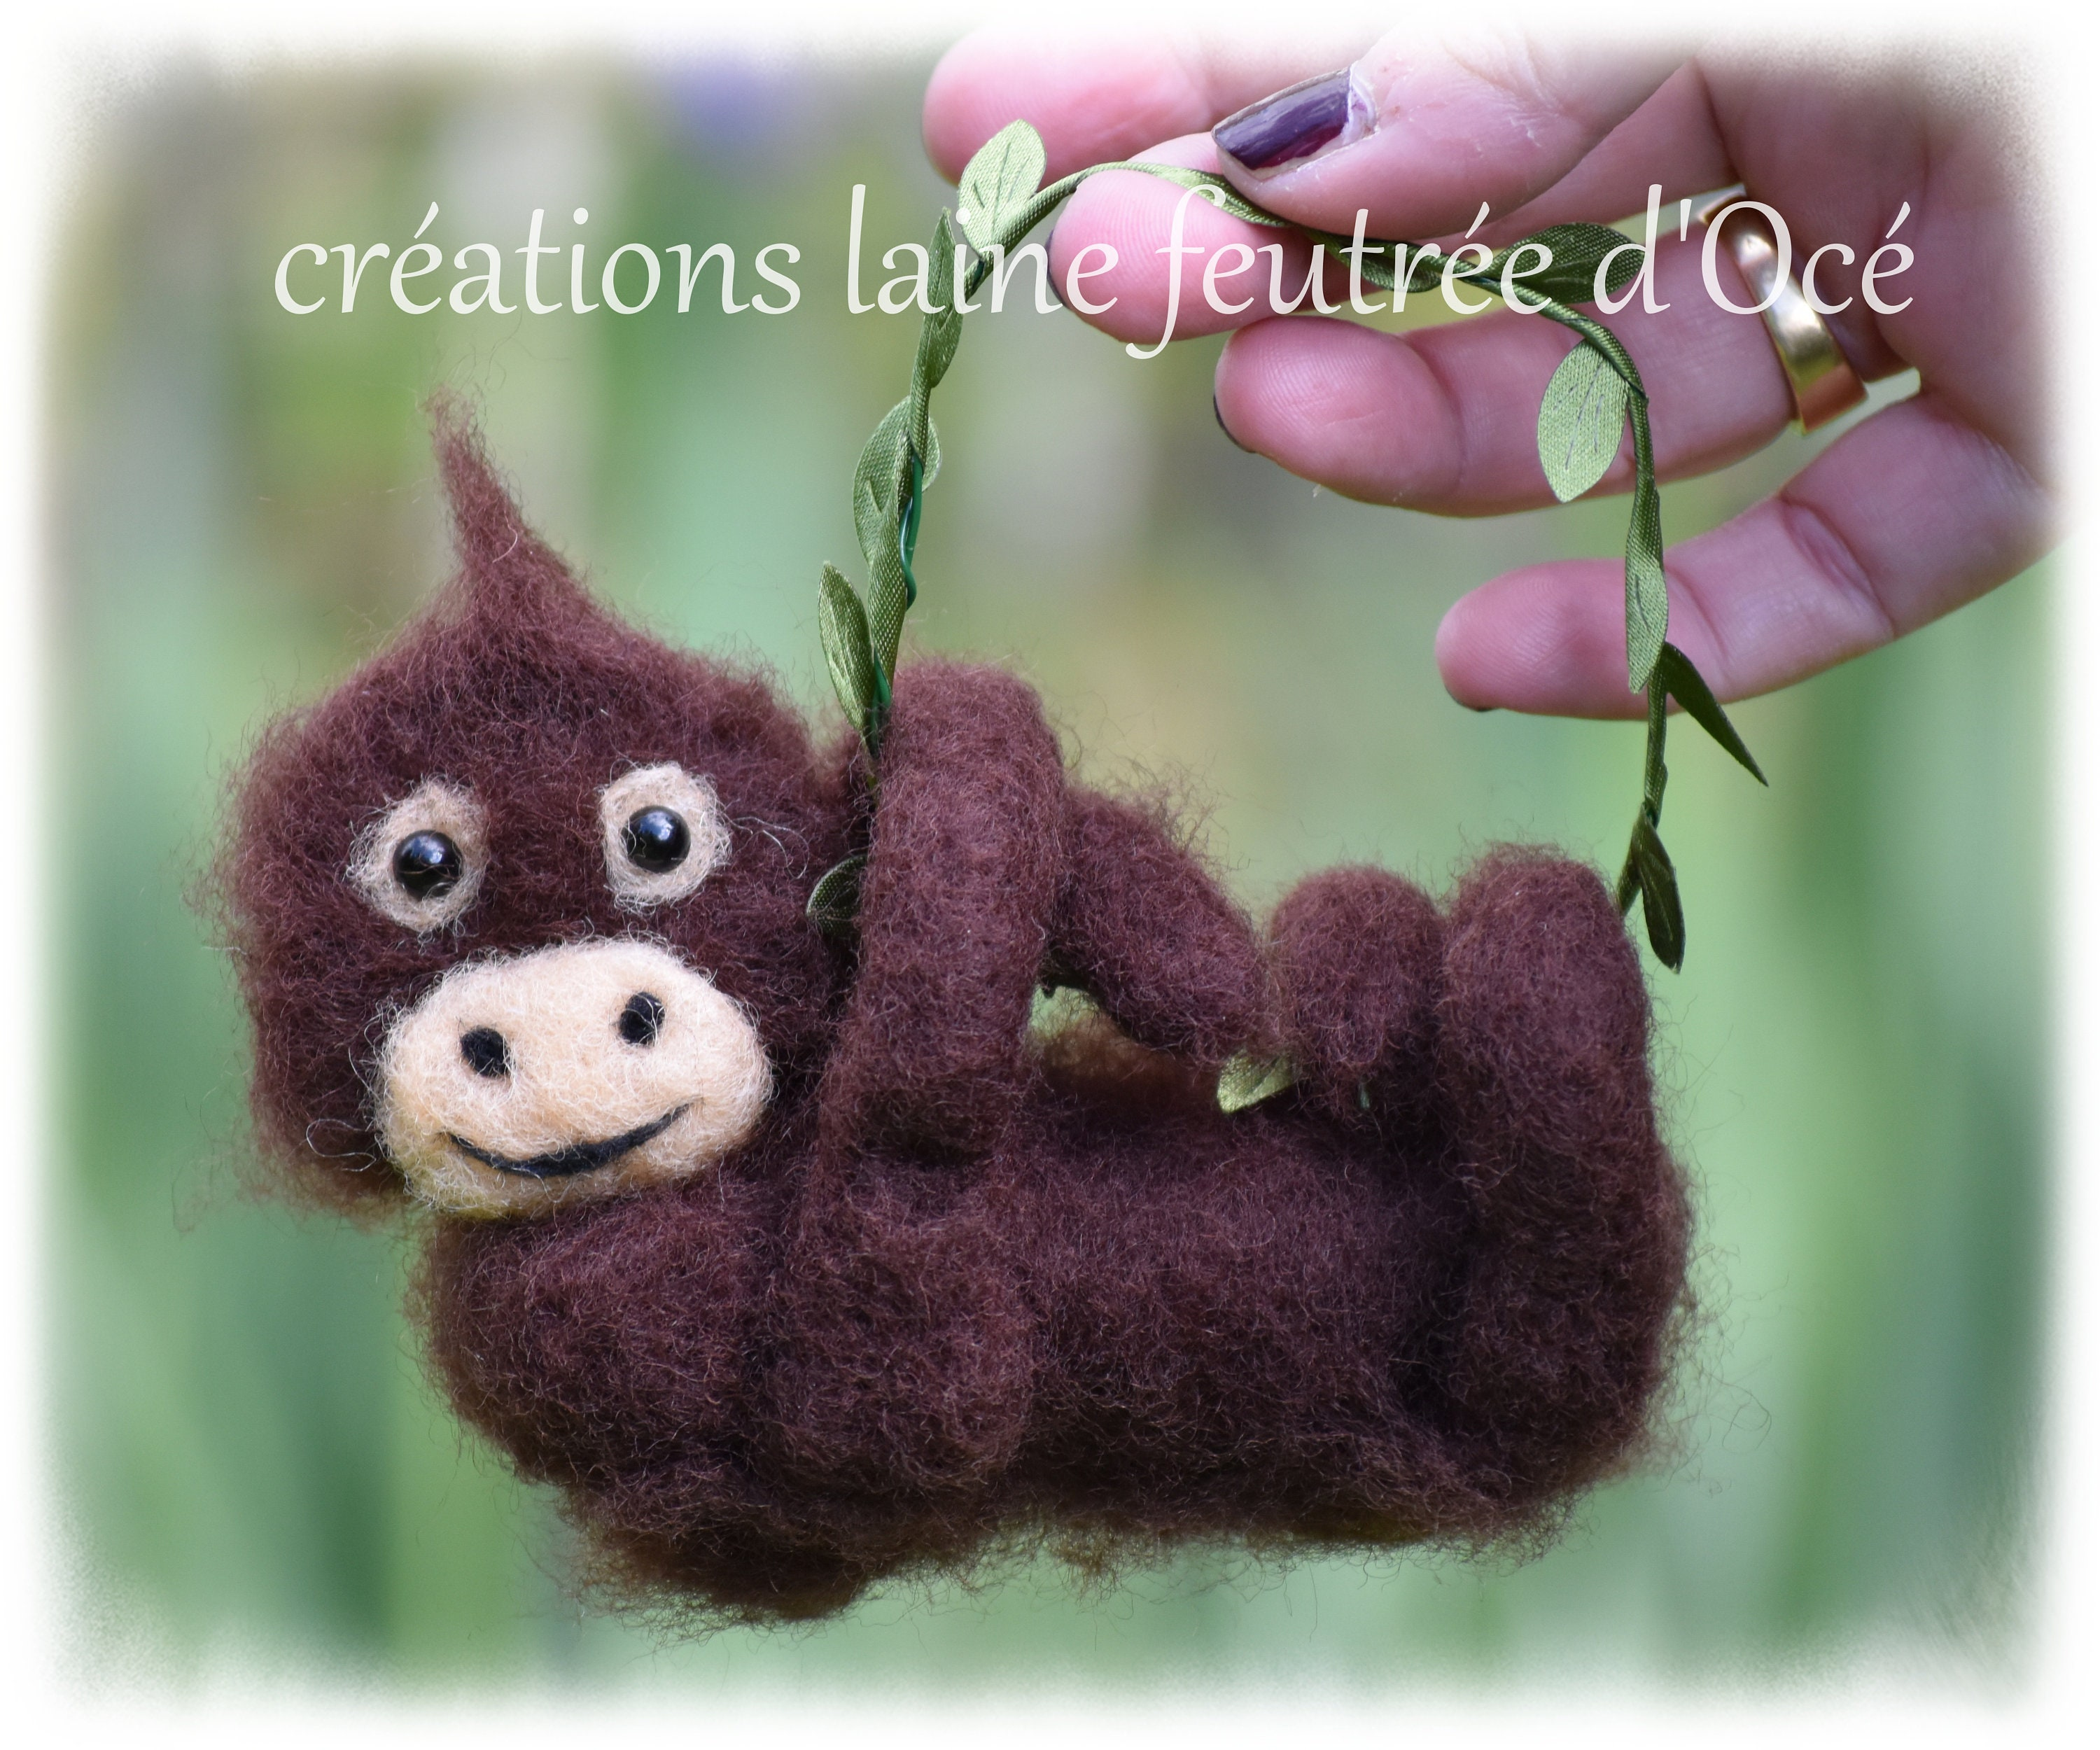 made in a painting Oerang oetan baby felted With the handmade.